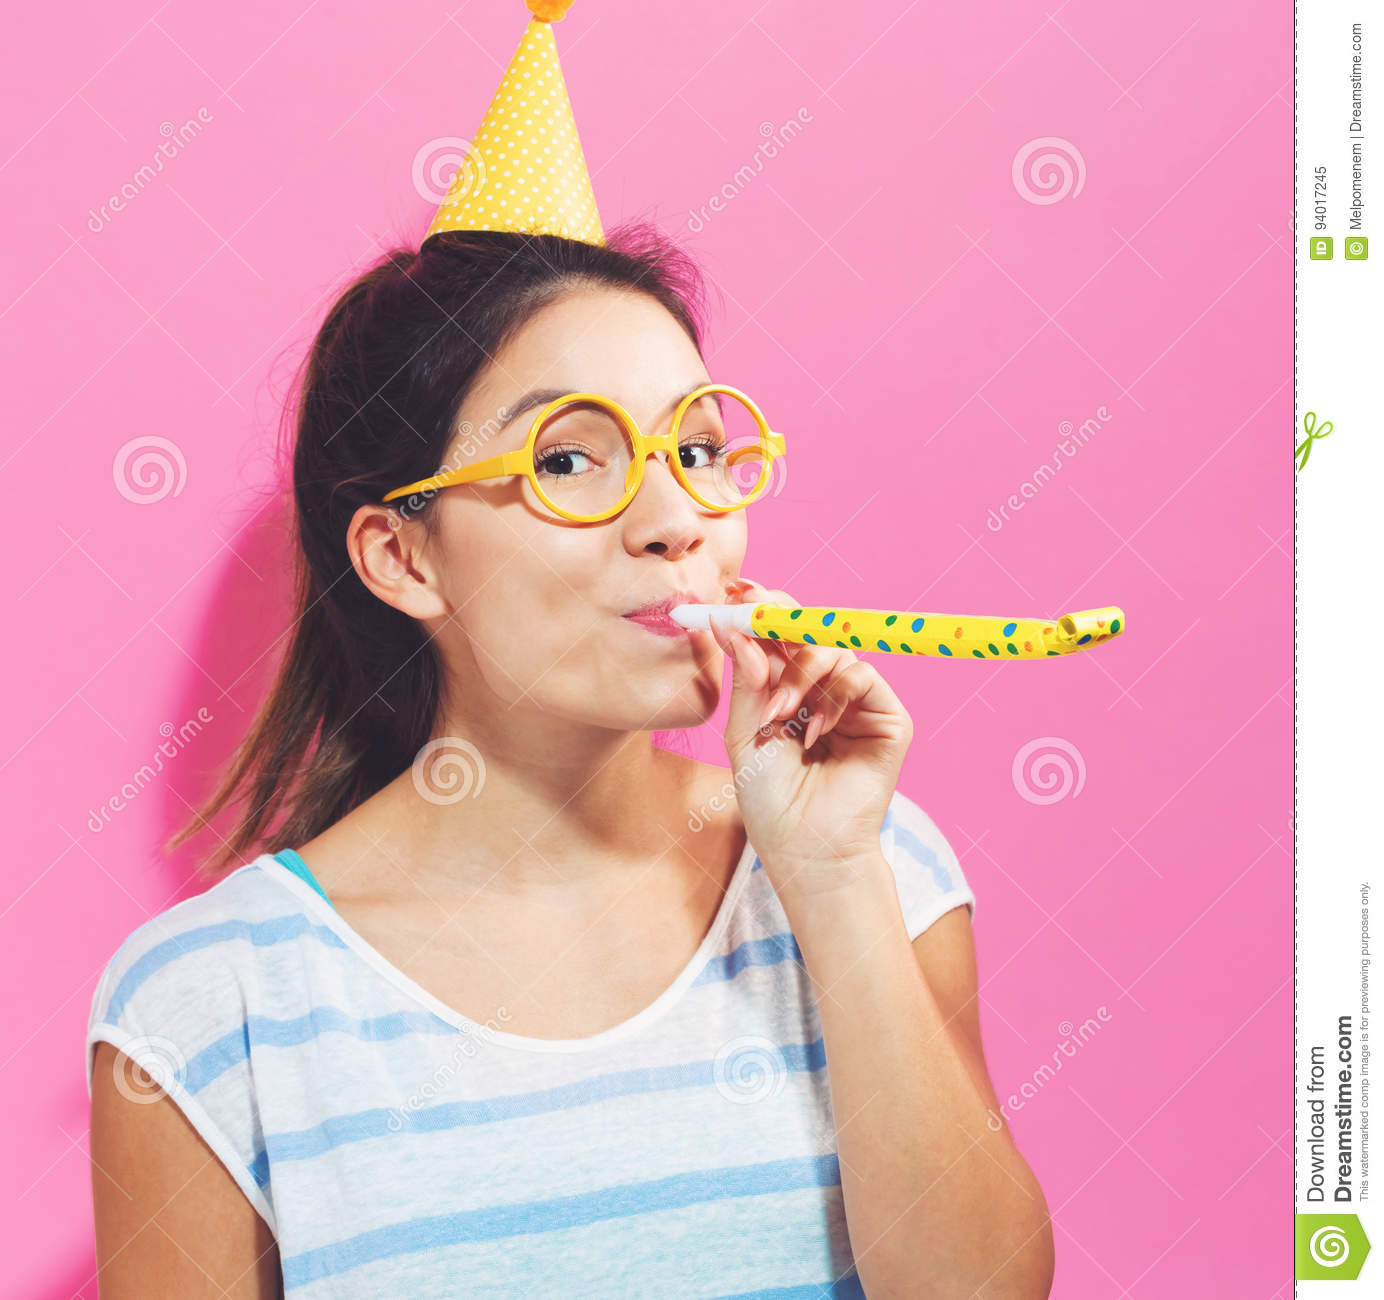 Young woman with noisemaker